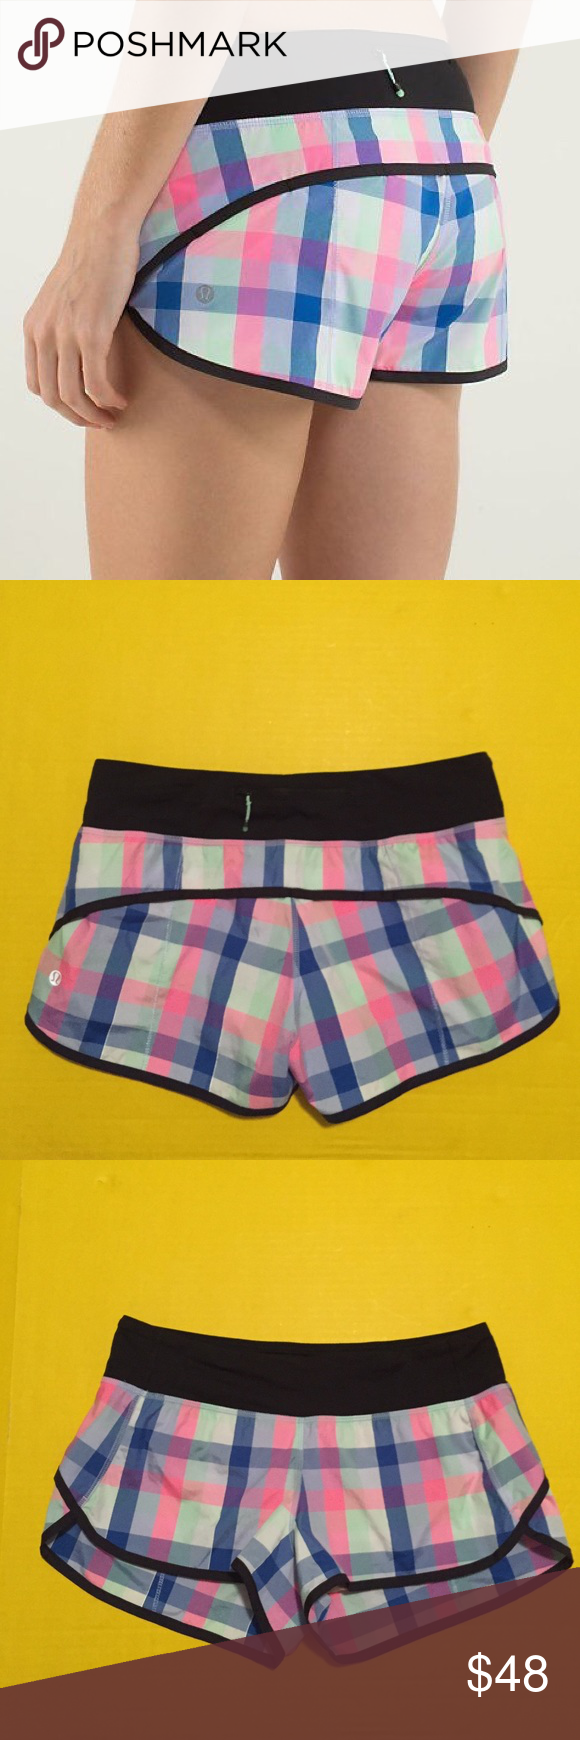 Lululemon speed shorts Like new Lululemon speed shorts, checkered multi color print, size 6, perfect condition with no flaws. Super comfortable and breathable. Bundle to save  lululemon athletica Shorts